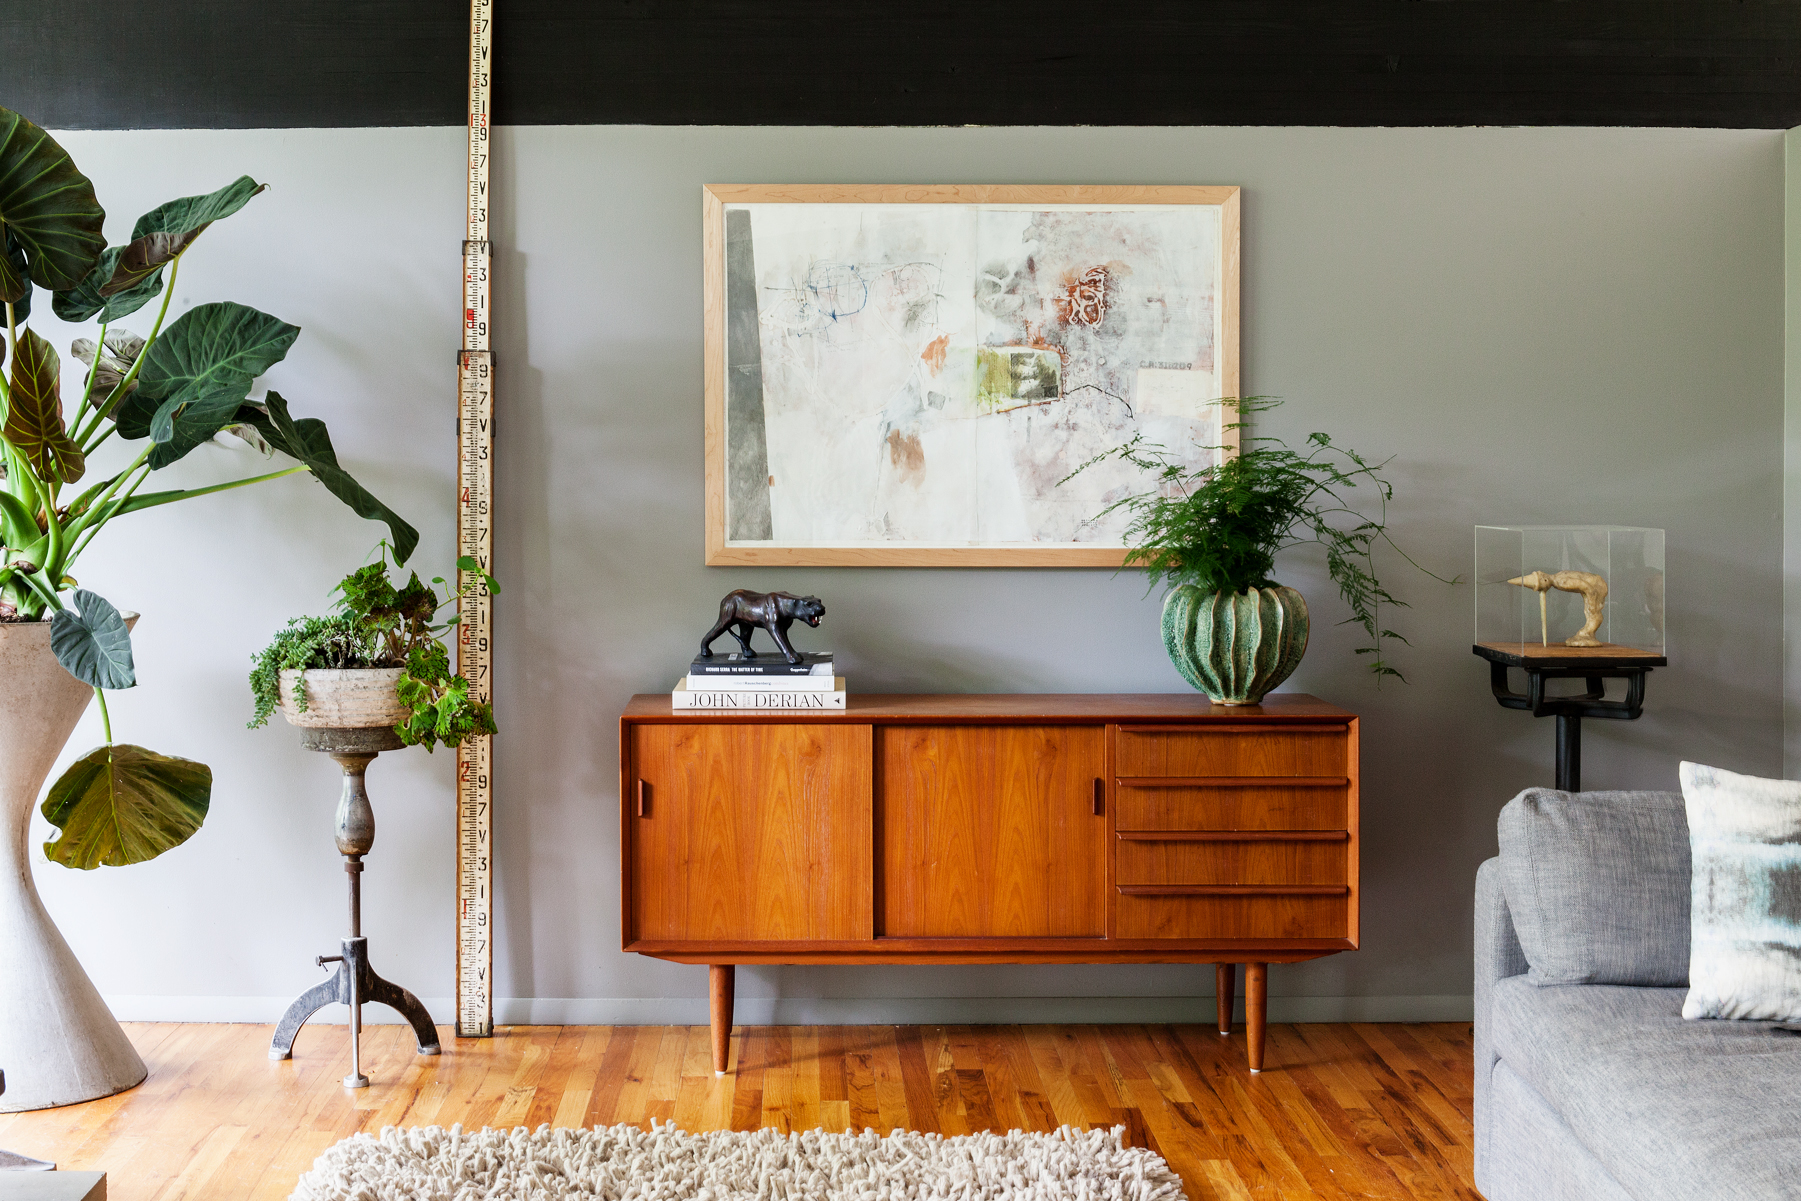 Buying Furniture 101: The 6 Most Important Things To Consider